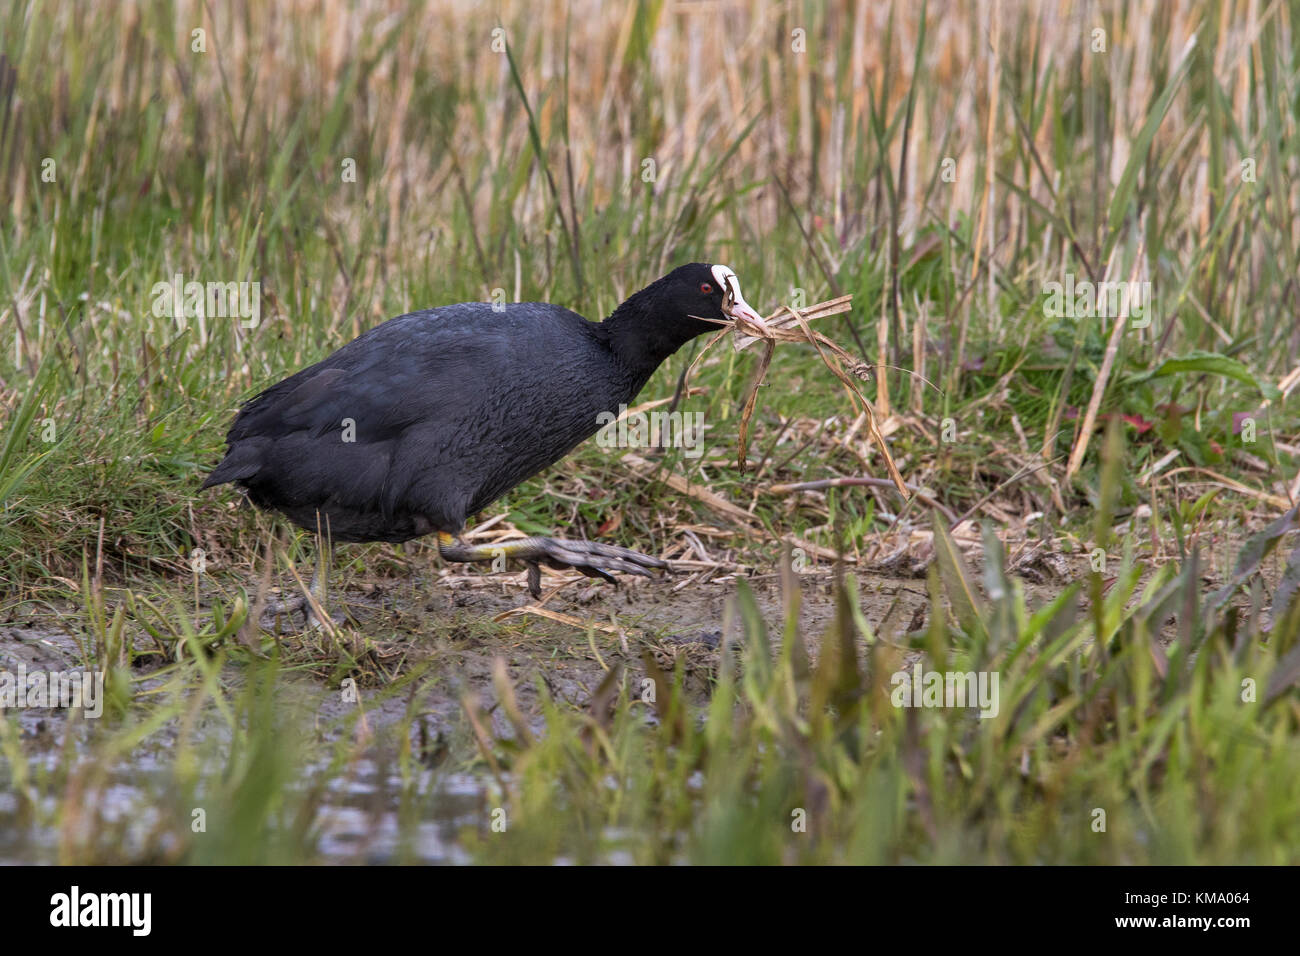 Eurasian coot (Fulica atra) in wetland collecting nesting material like grass blades for nest building in the breeding - Stock Image